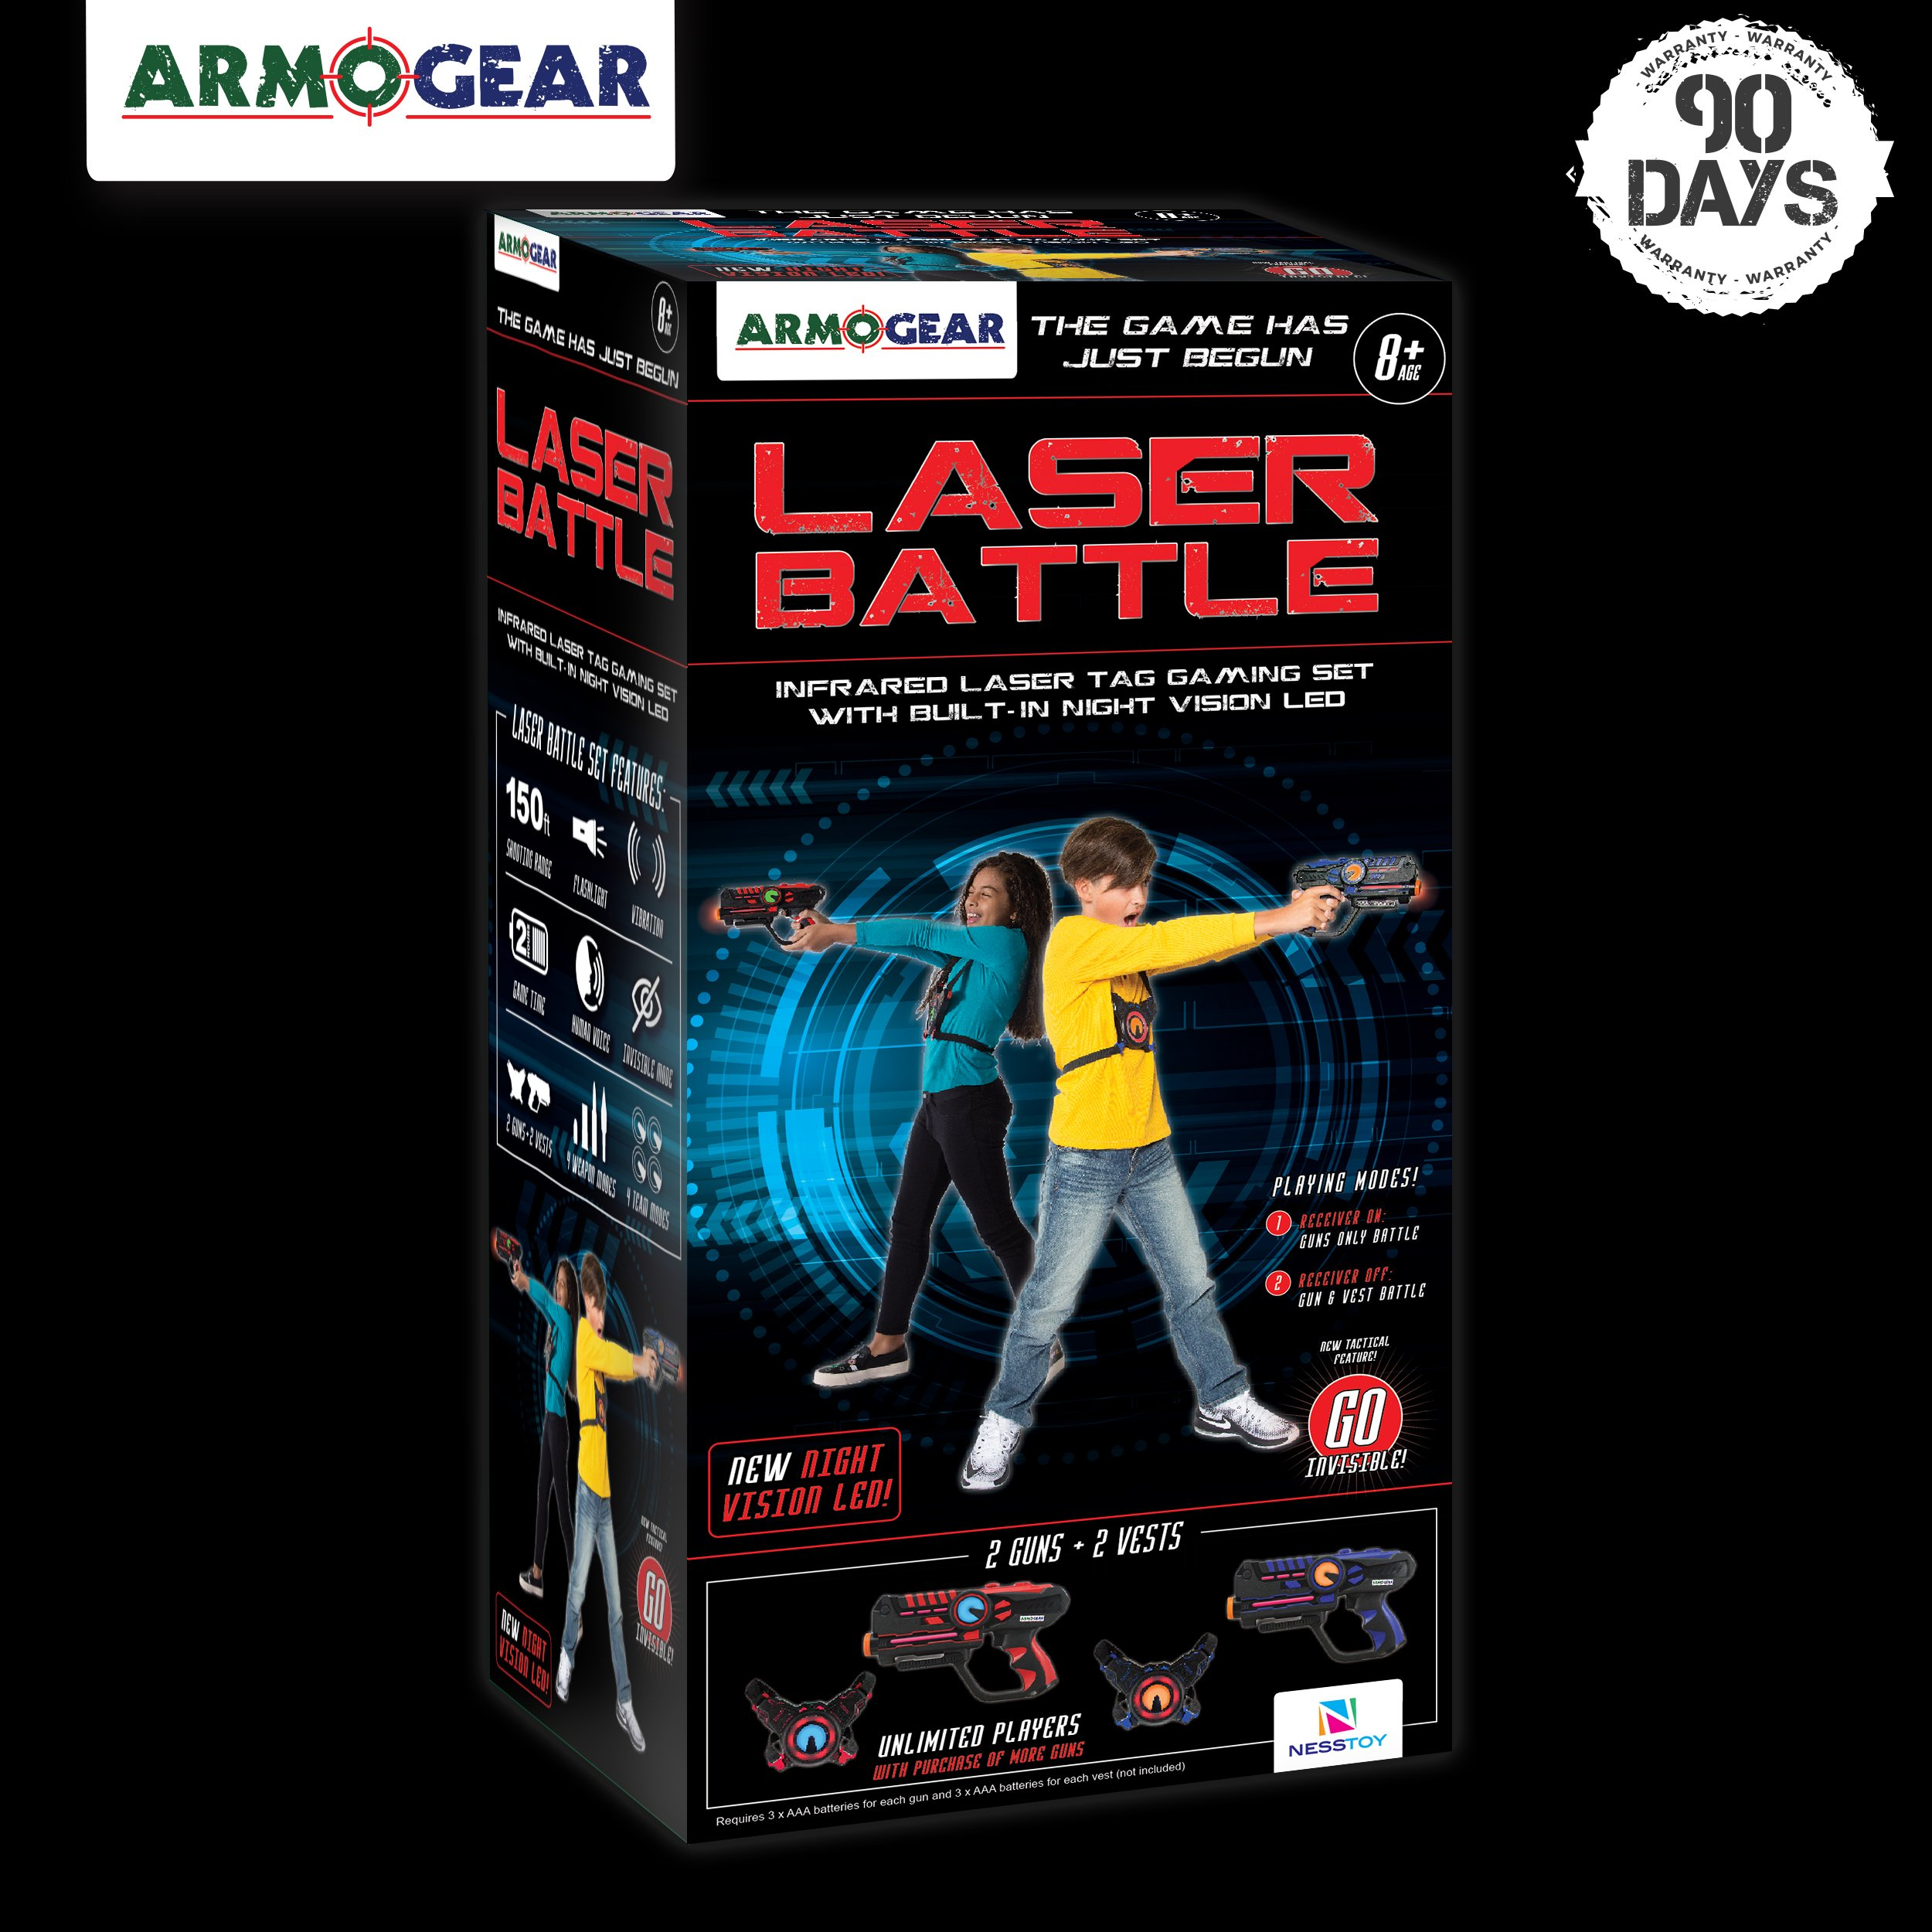 ArmoGear Infrared Laser Tag Guns and Vests - Laser Battle Game Pack Set of 2 - Infrared 0.9mW by ArmoGear (Image #6)